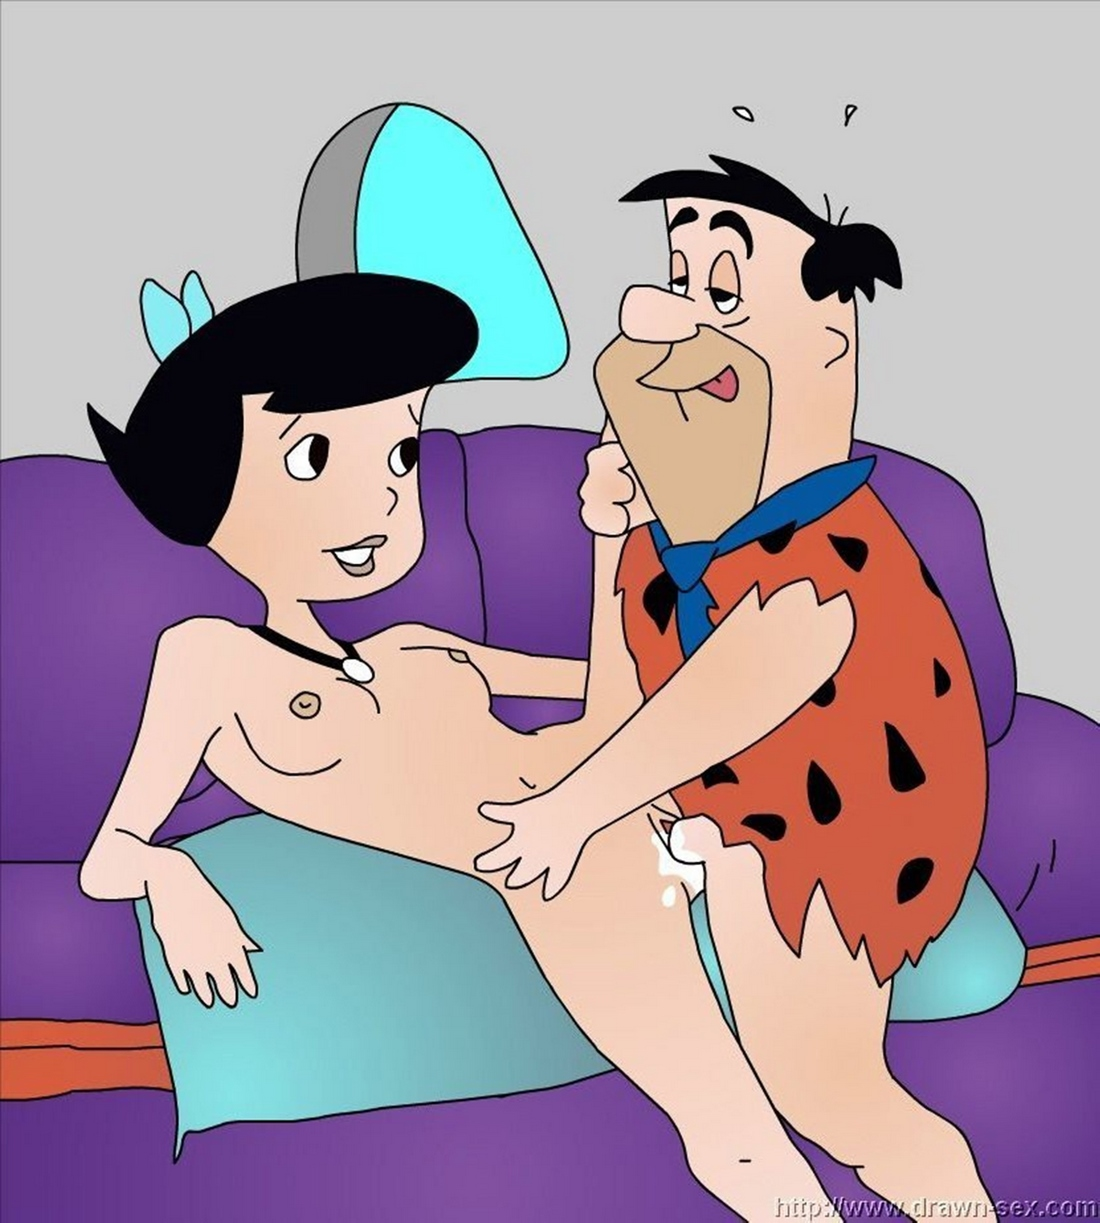 DrawnSex-Flintstones Sex